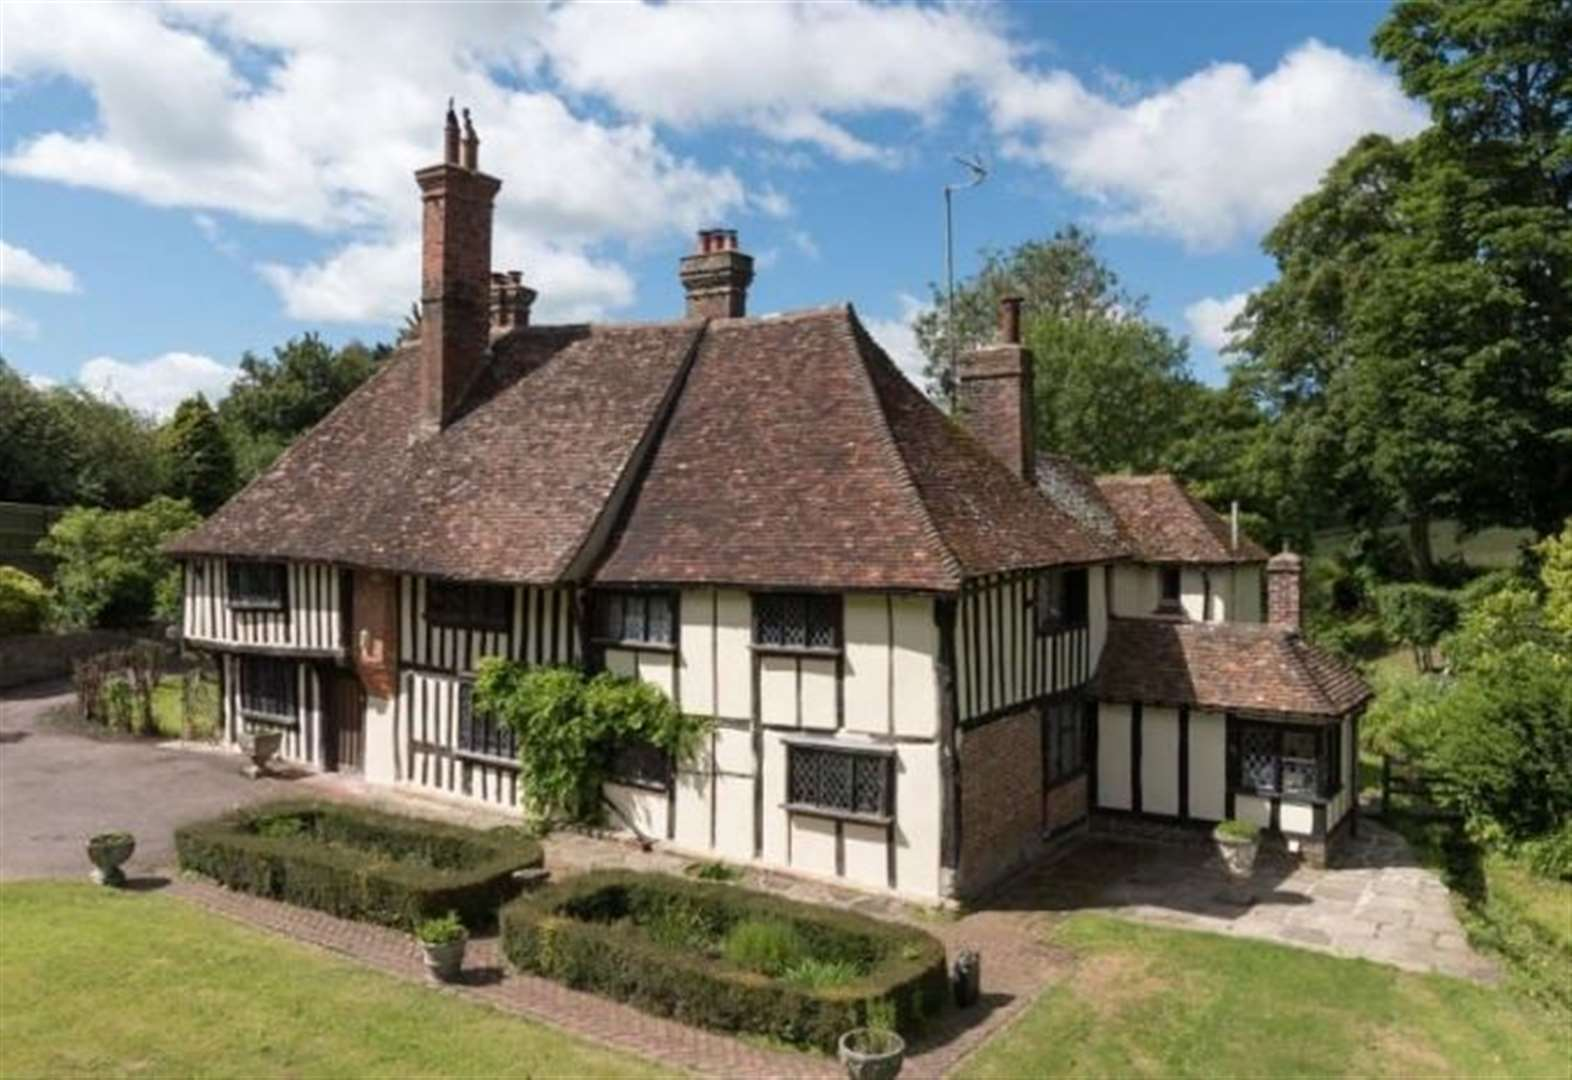 Take a look inside £1.4m house with intriguing history